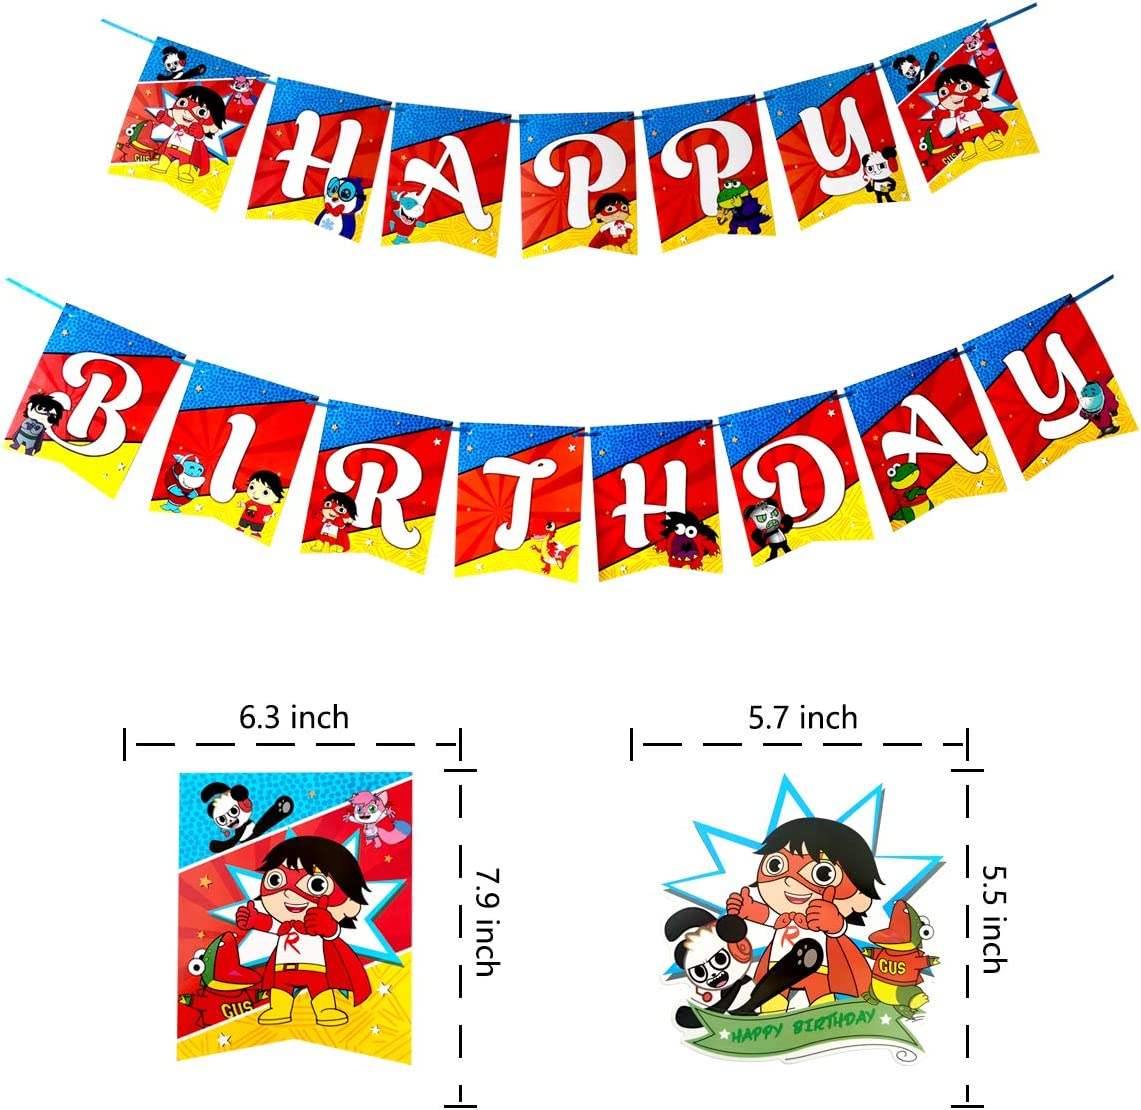 Ryans World Birthday Party Supplies,Happy Birthday Banner Cake Topper Cupcake Toppers for Boy Girl Ryans World Theme Birthday Party Decorations